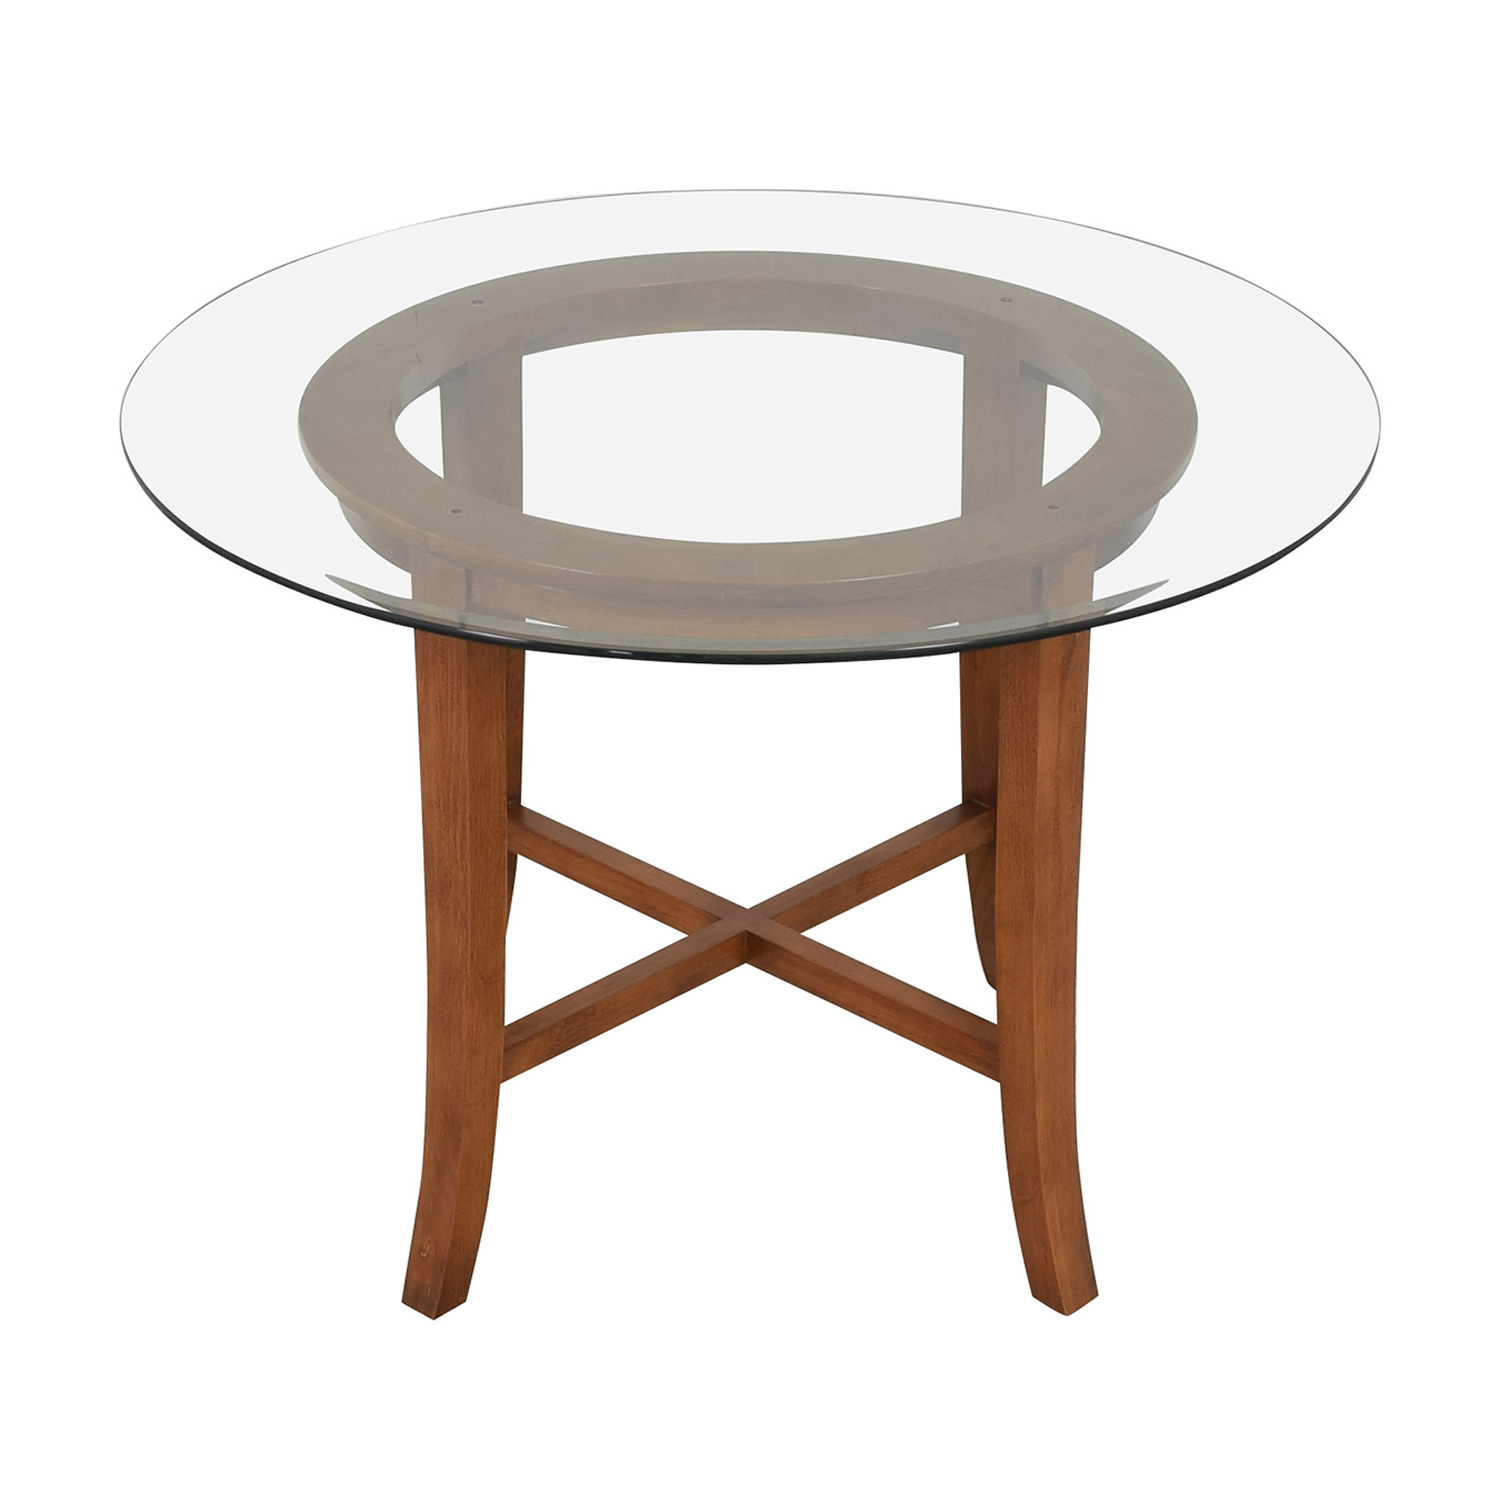 Crate & Barrel Crate & Barrel Halo Round Dining Table on sale